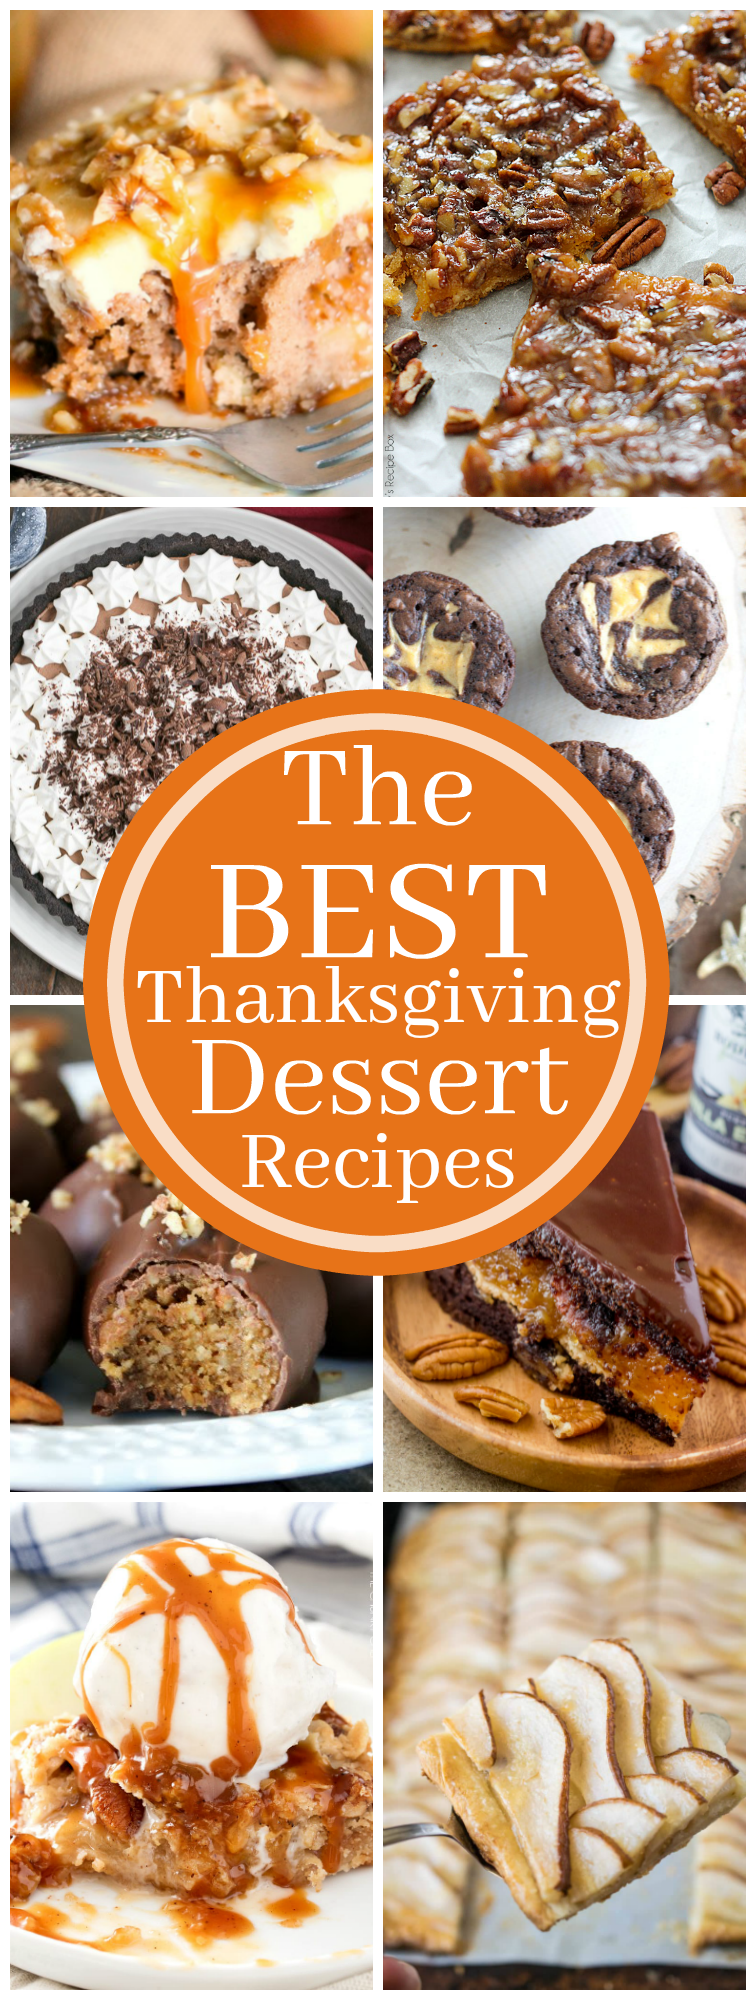 Get tried-and-true pie recipes for pumpkin, pecan, apple, and sweet potato pies: all of your Thanksgiving favorites! Our Most Popular Thanksgiving Desserts Crave-worthy recipes for cheesecakes and pies, cake rolls and bread pudding.